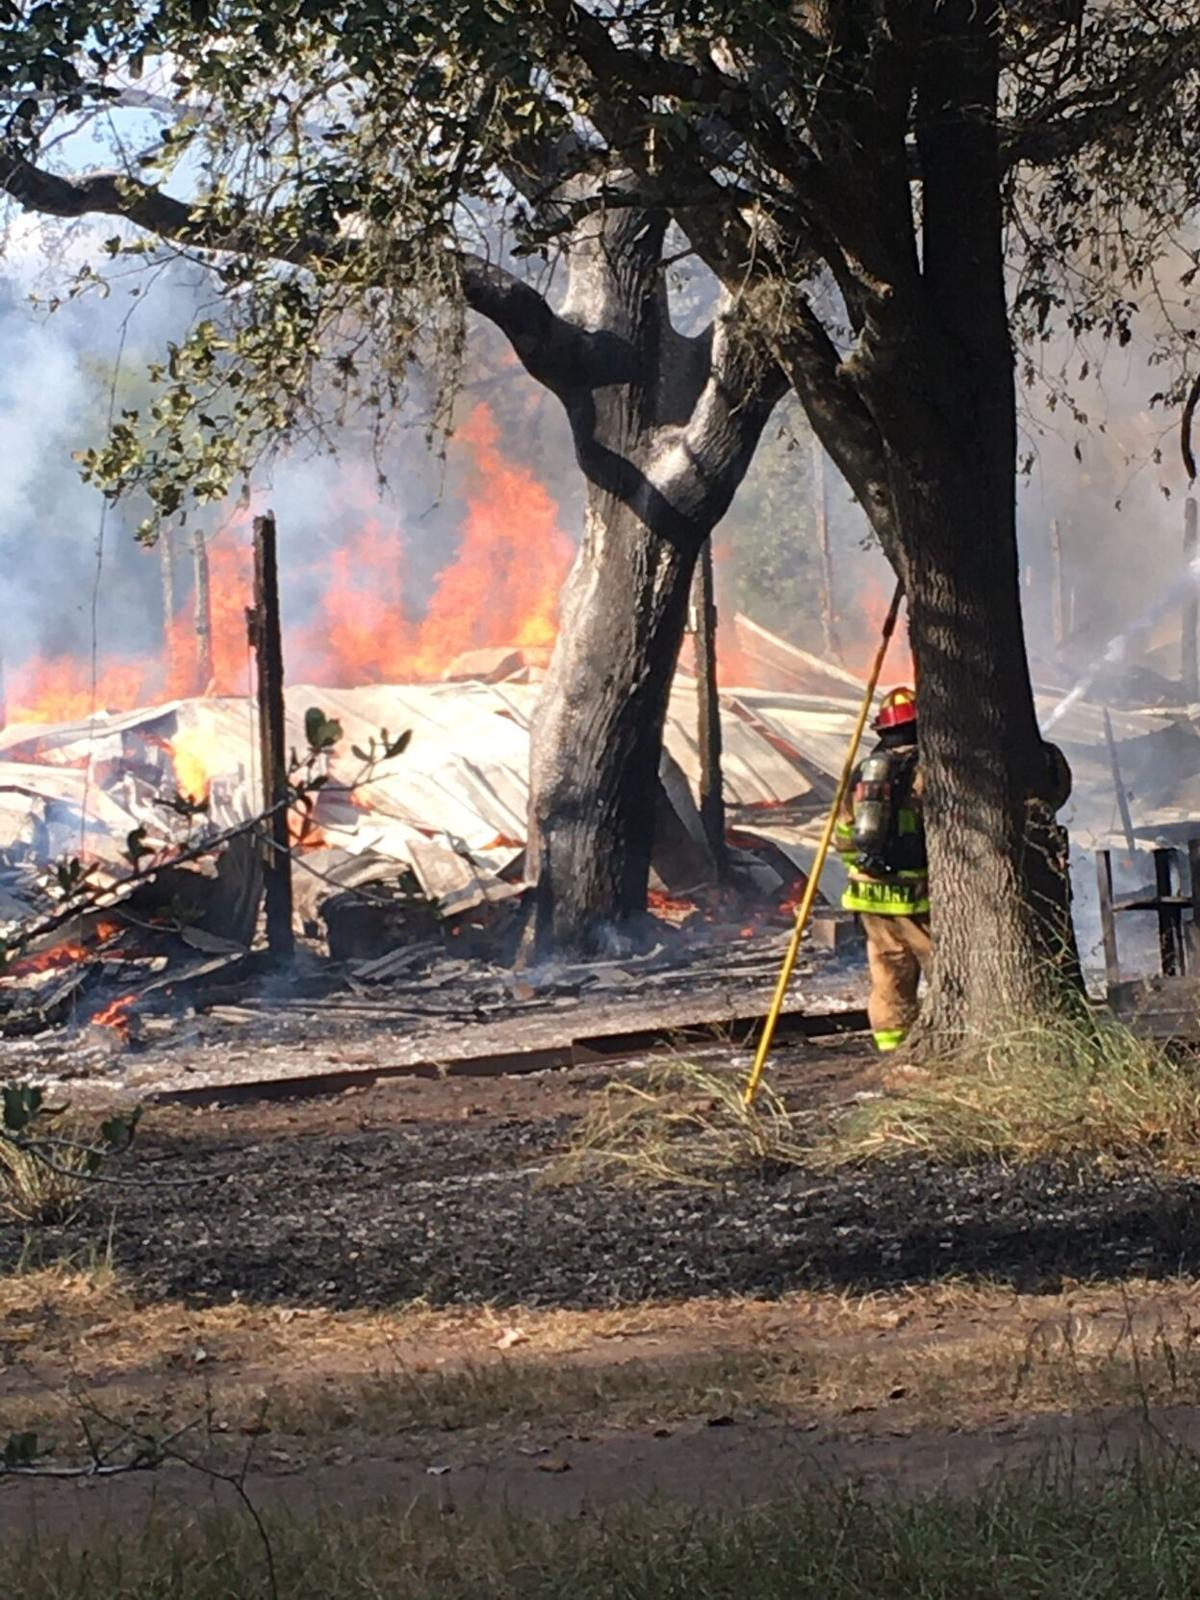 Firefighters dispatched to Victoria County fire